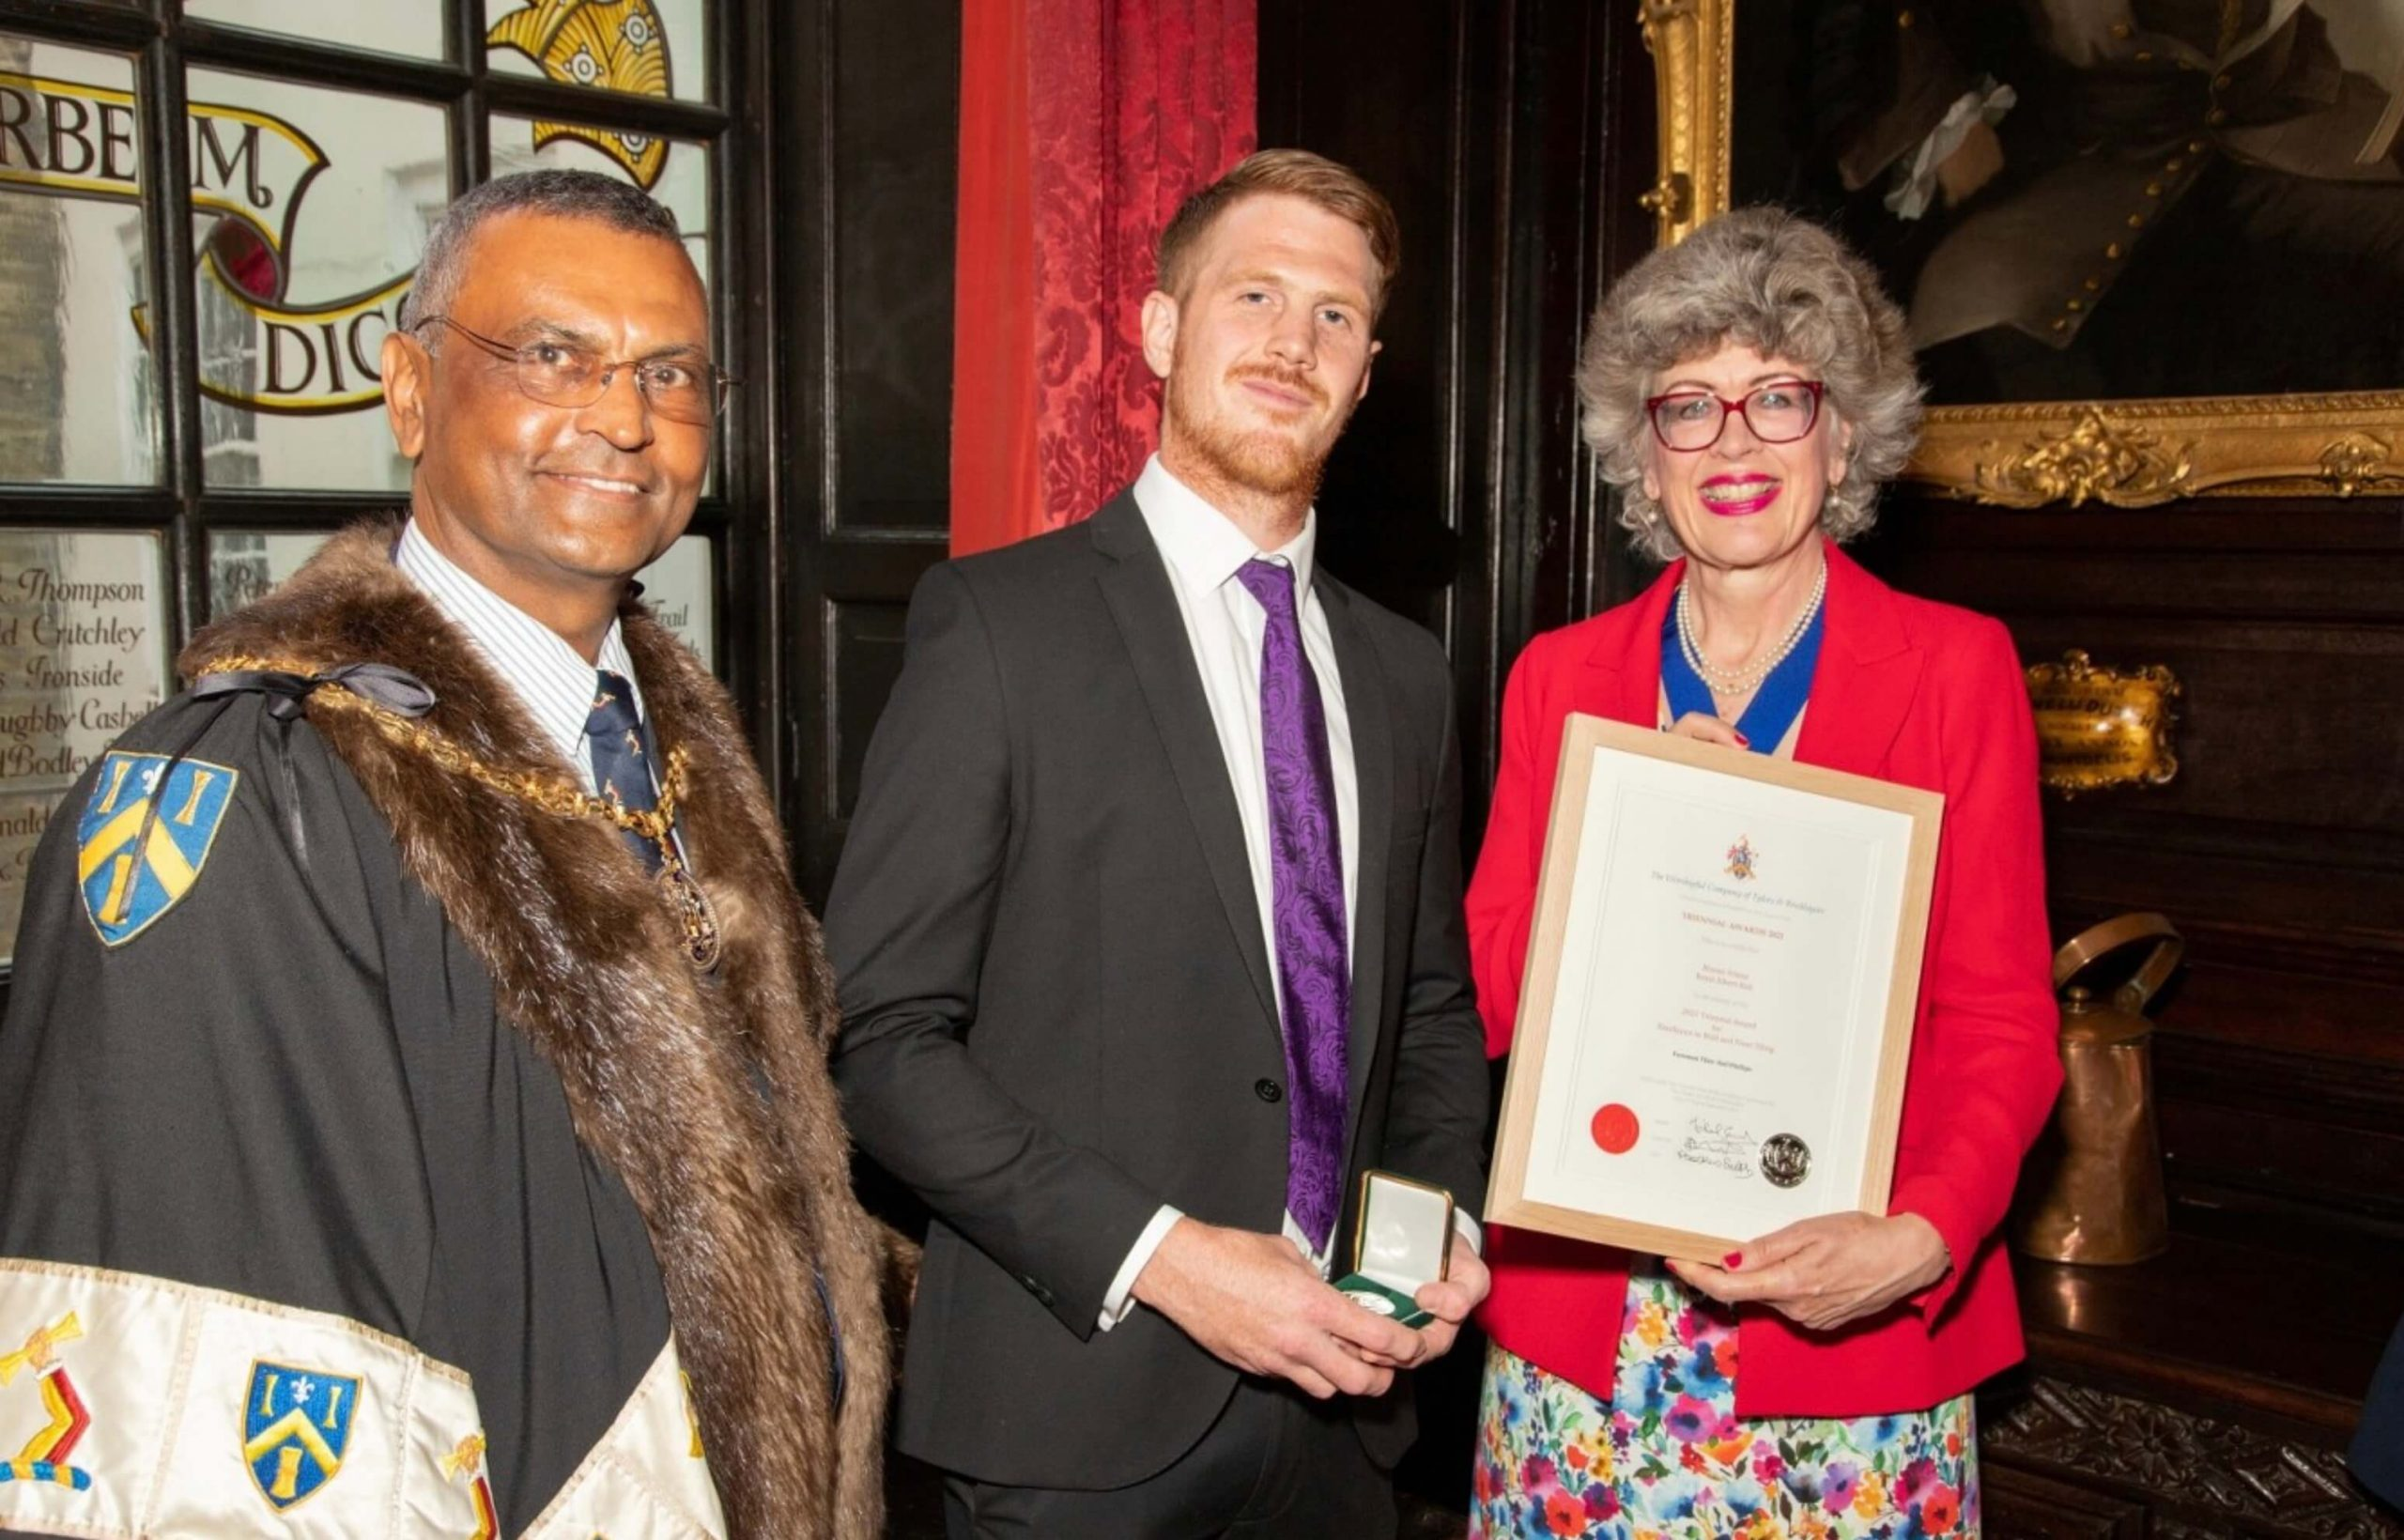 Mosaic Restoration was awarded the 2021 Triennial Award for 'Excellence in Floor and Wall Tiling'